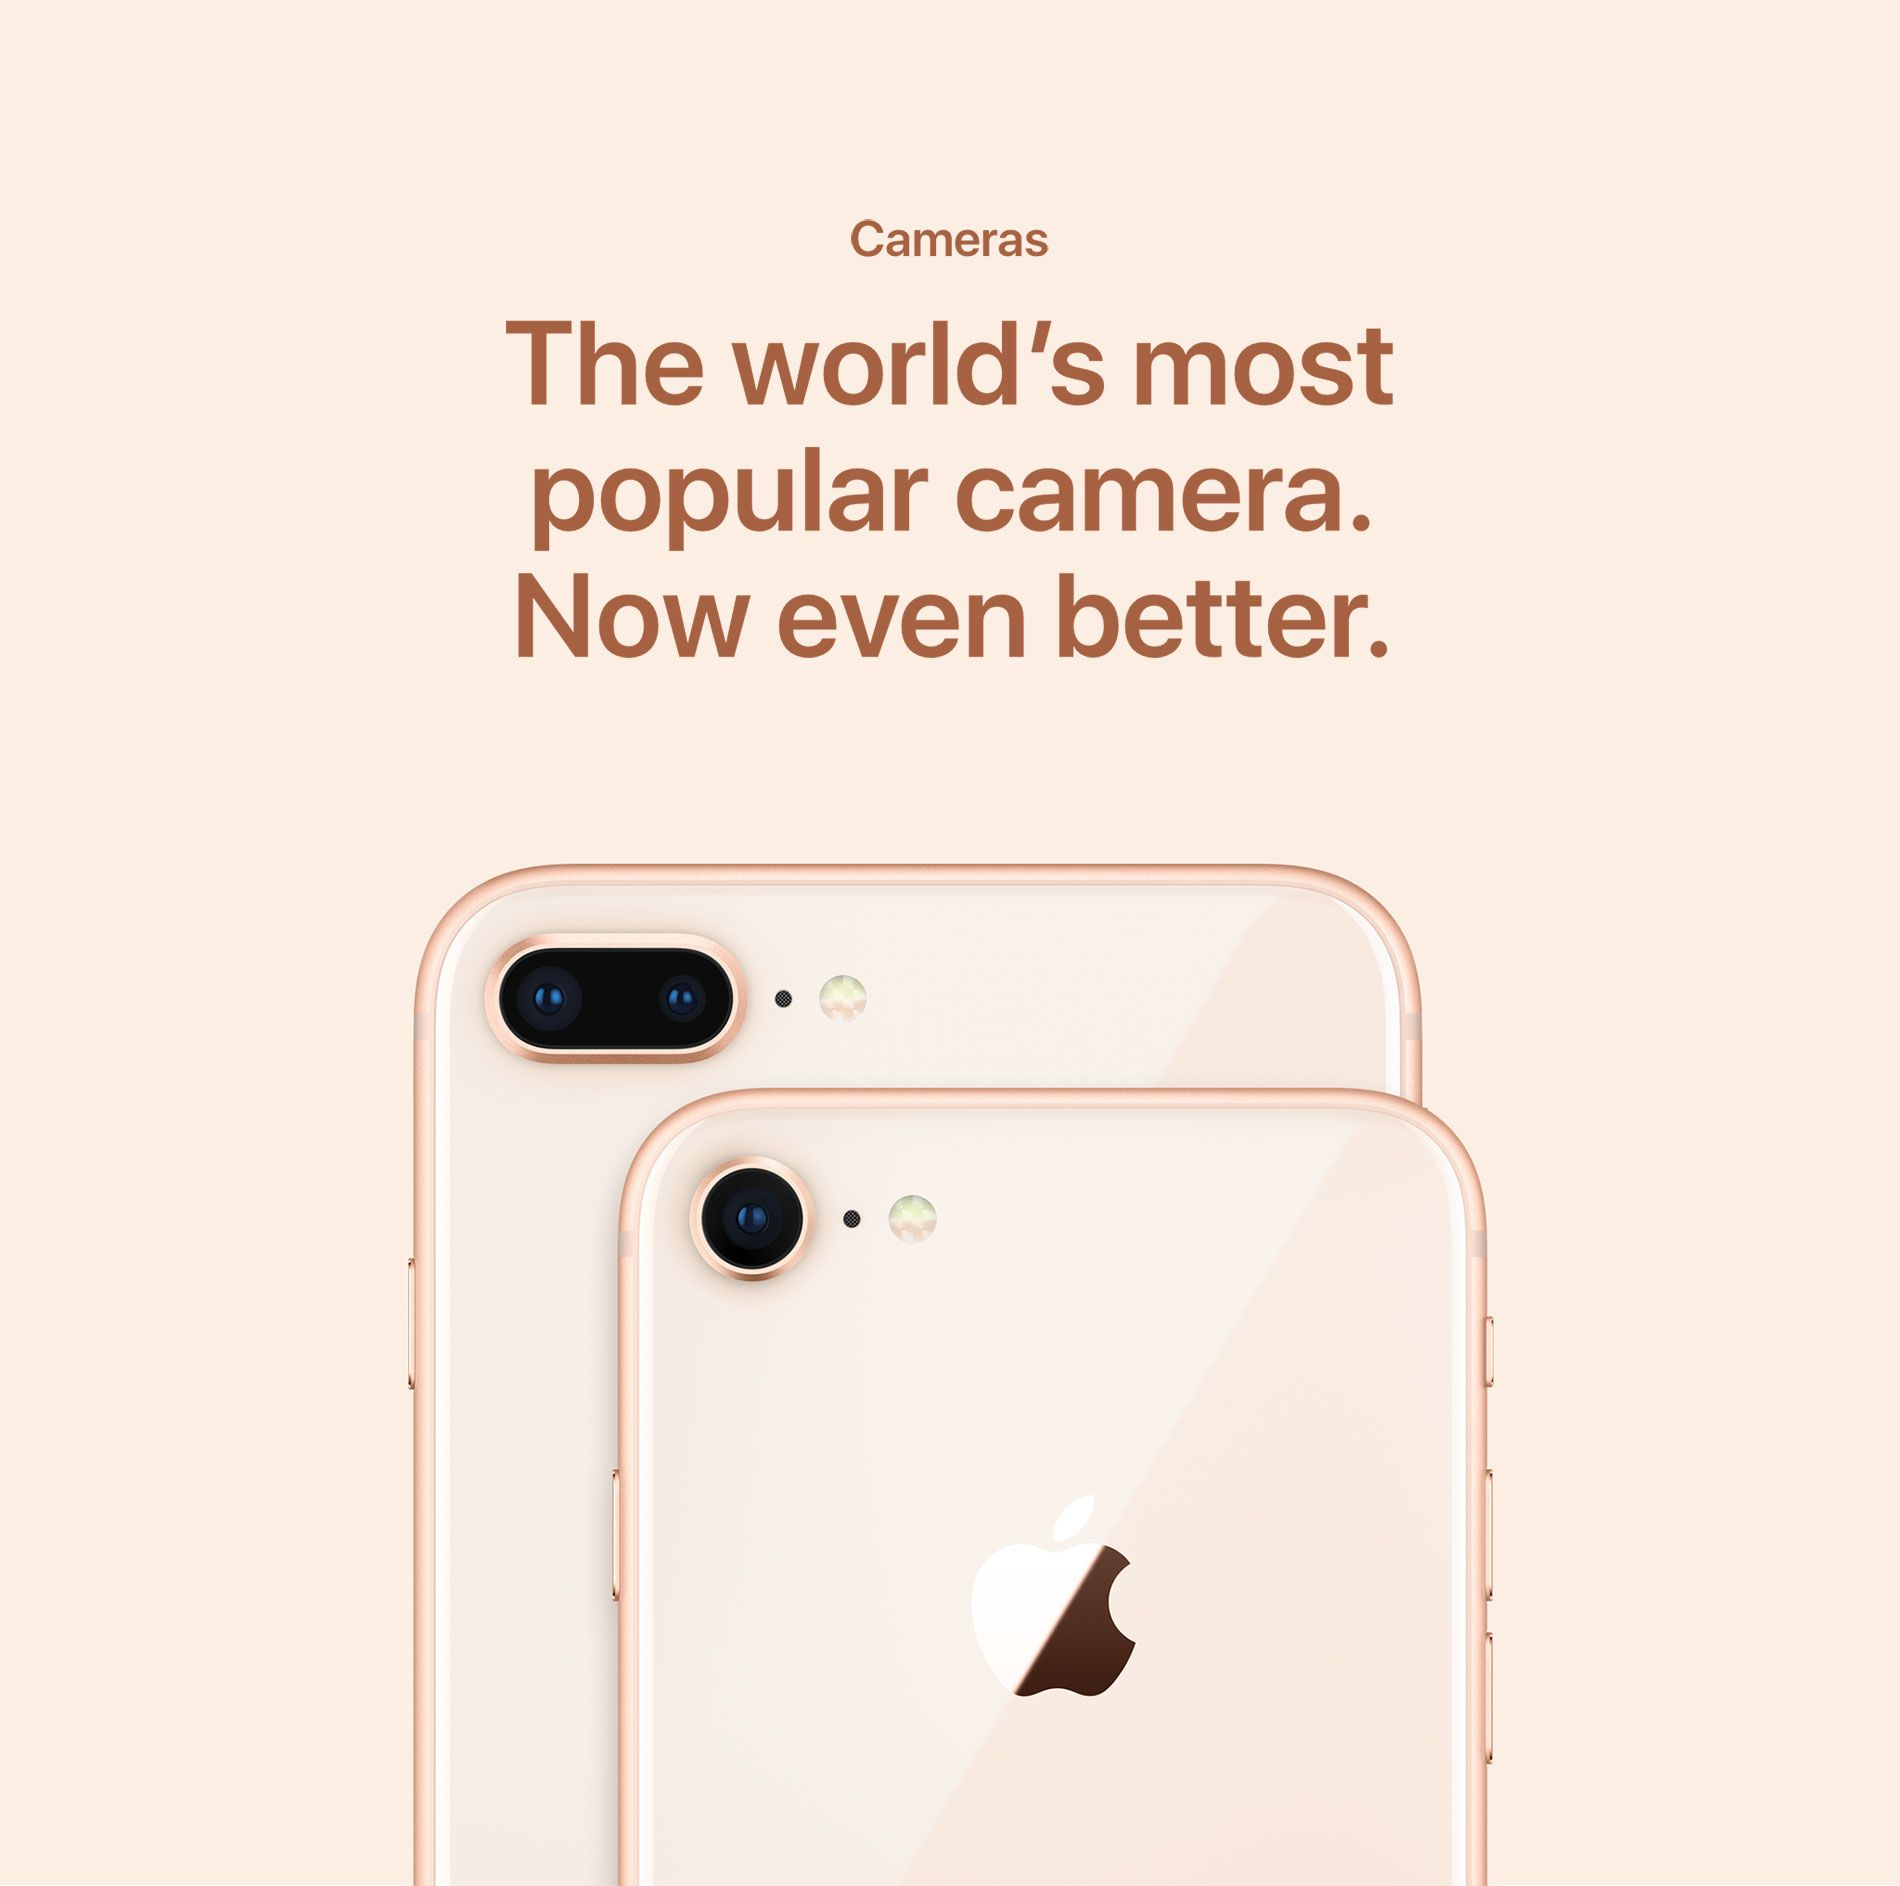 Cameras - The world's most popular camera. Now even better.